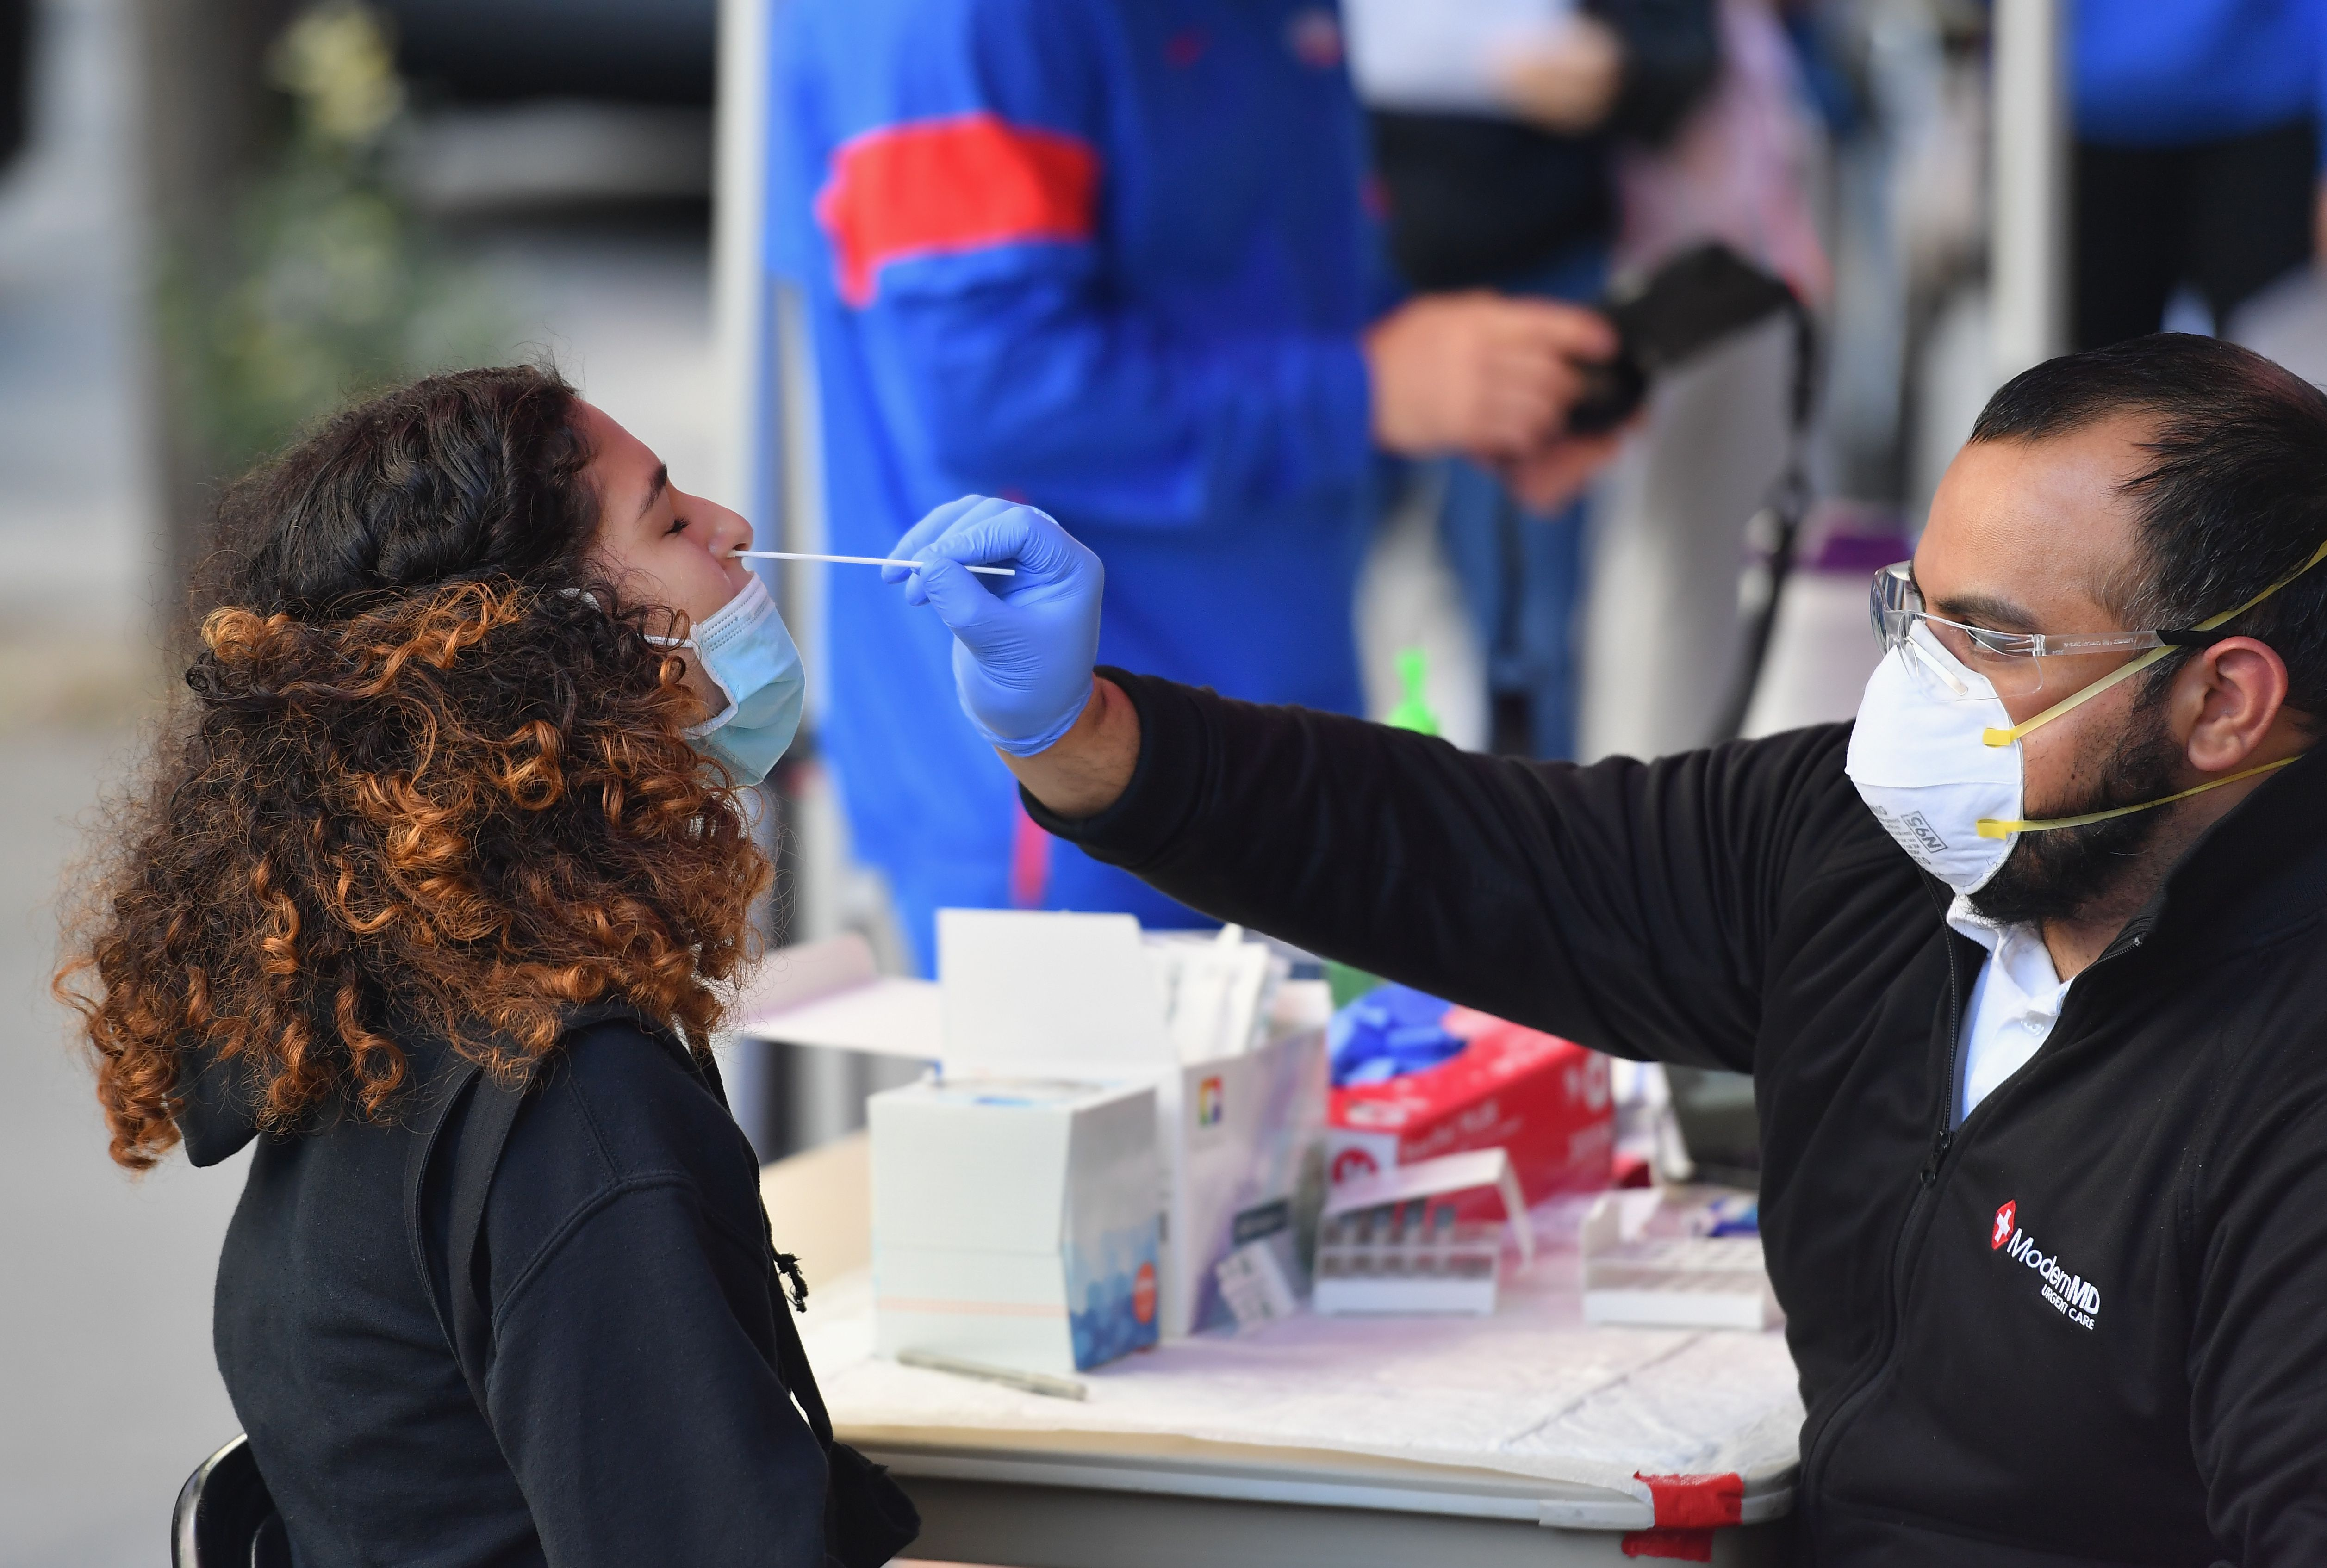 A student wearing a blue face mask is tested for COVID by a medical professional via nasal swab.